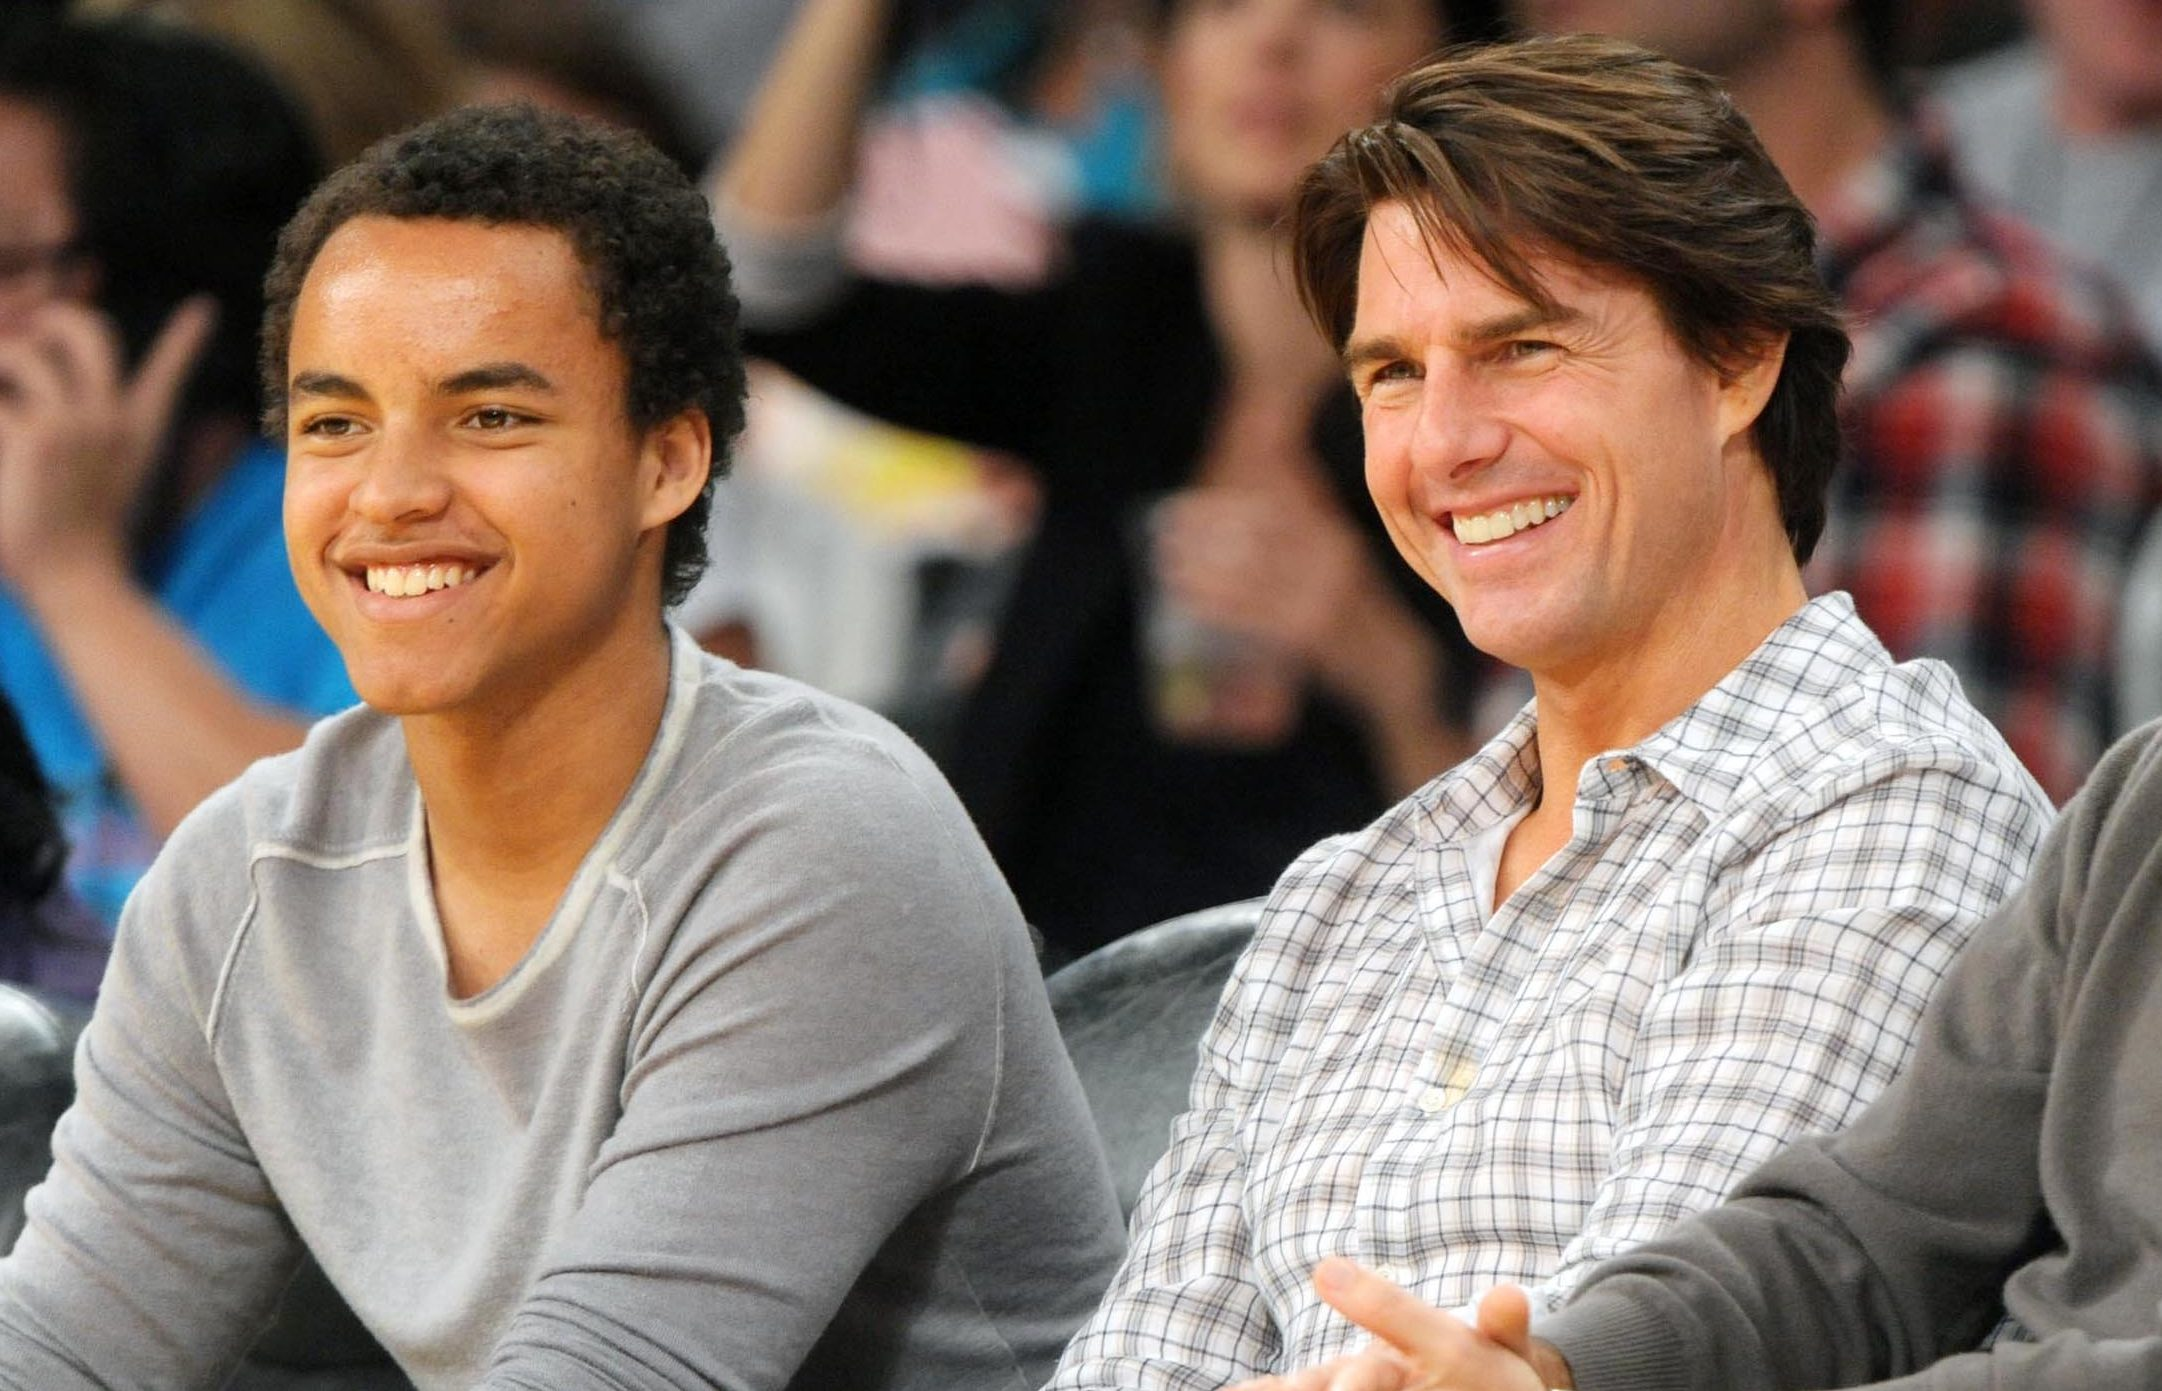 TOM CRUISE AND SON CONNOR AT LAKERS-SUNS GAME 2